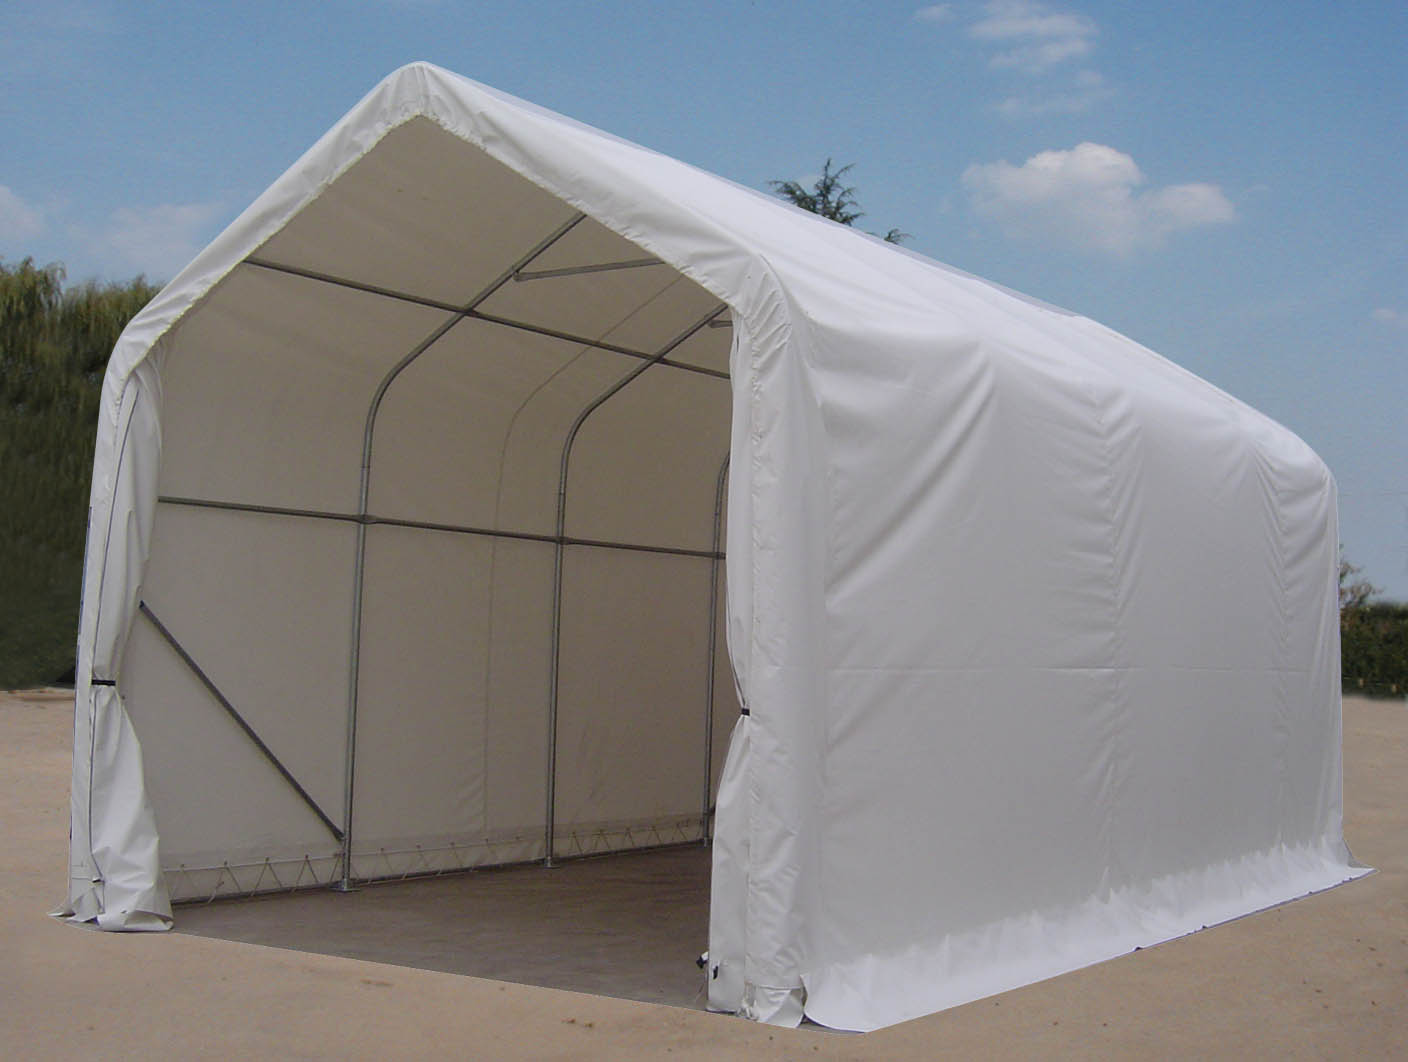 Bass Boat Shelters : Portable garage shelter storage buildings canopies autos